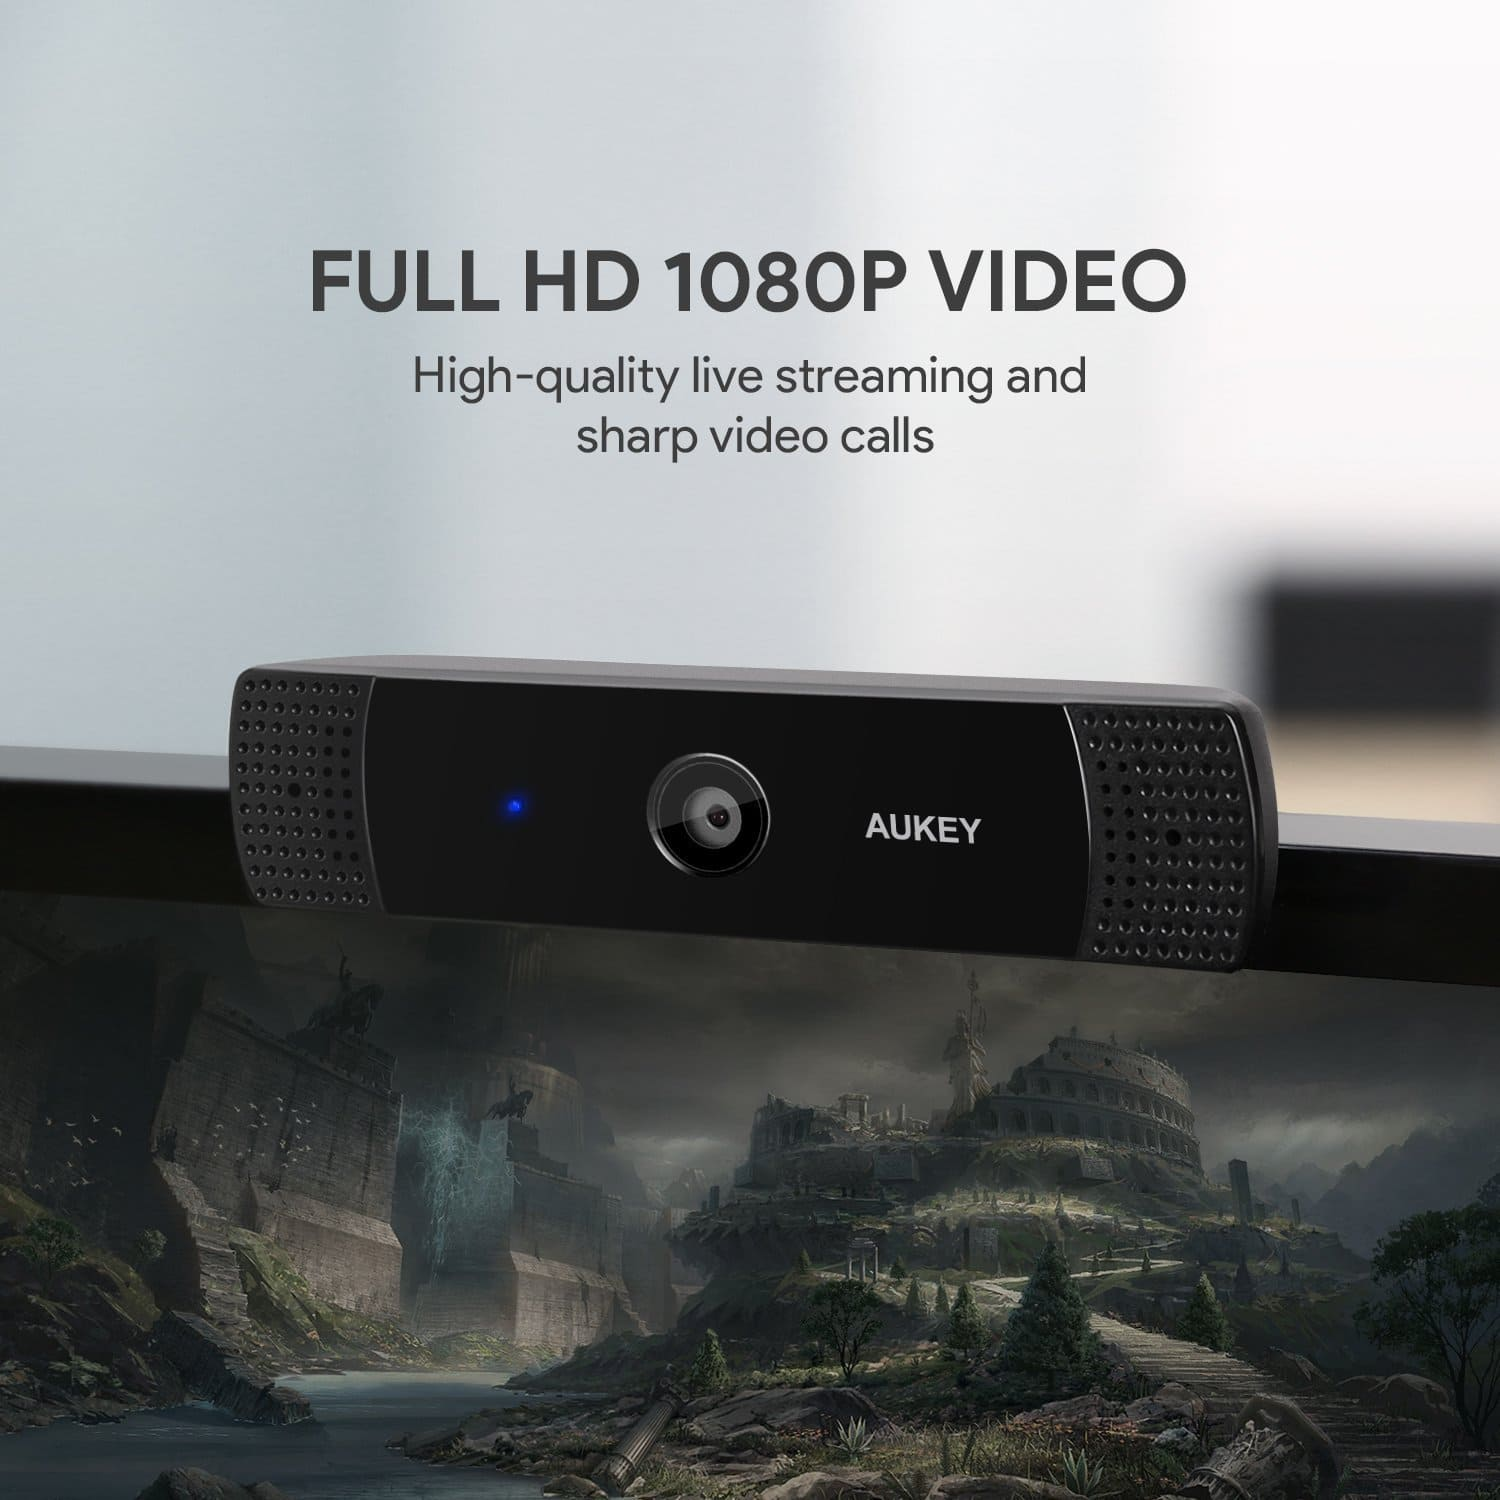 Image test webcam aukey 1080p full hd 9